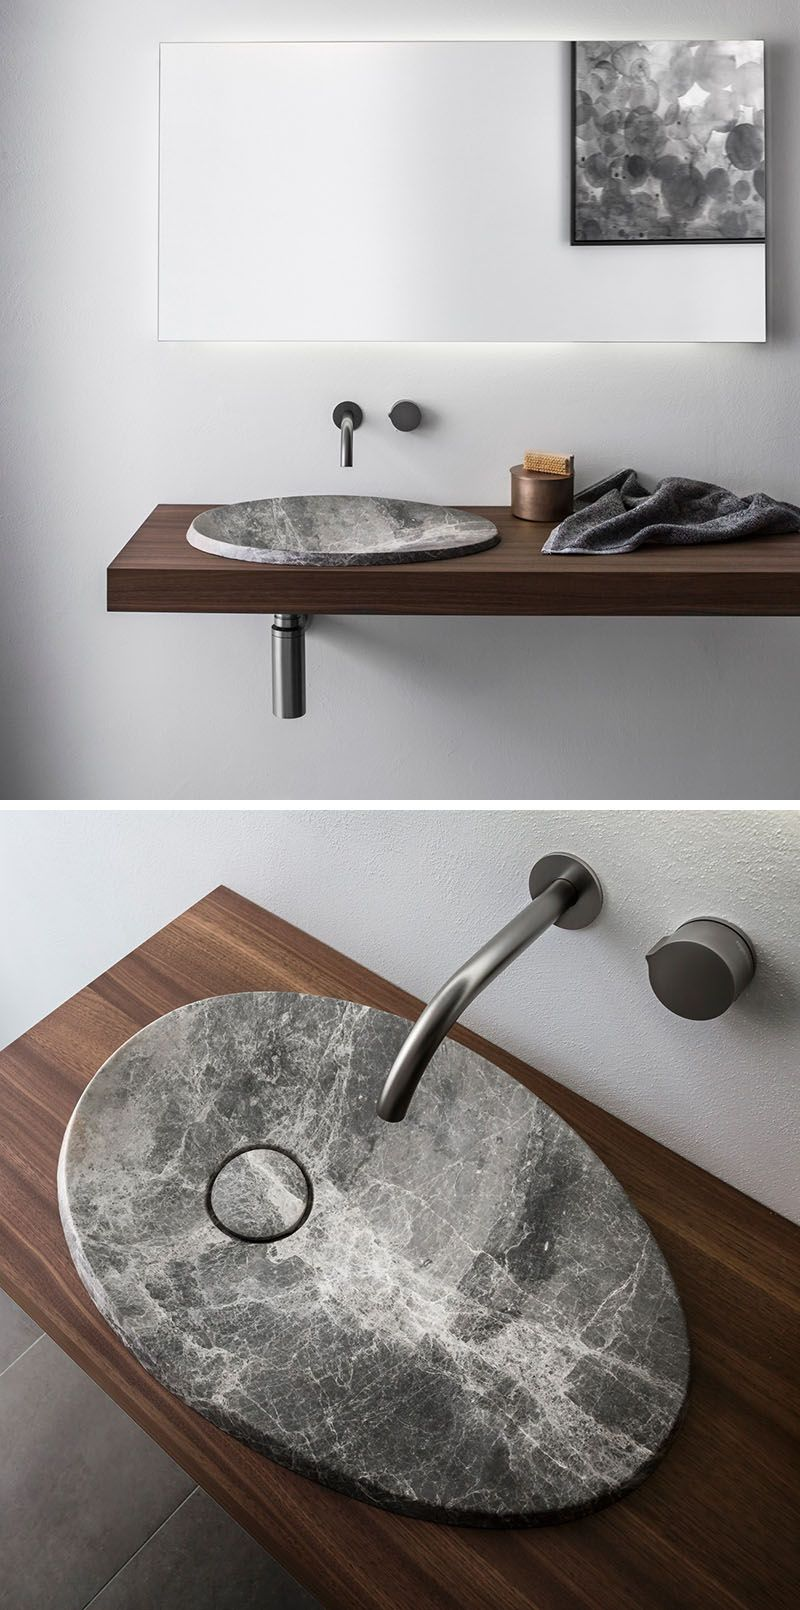 The Design Of This Natural Stone Sink Is Inspired By The Shape Of